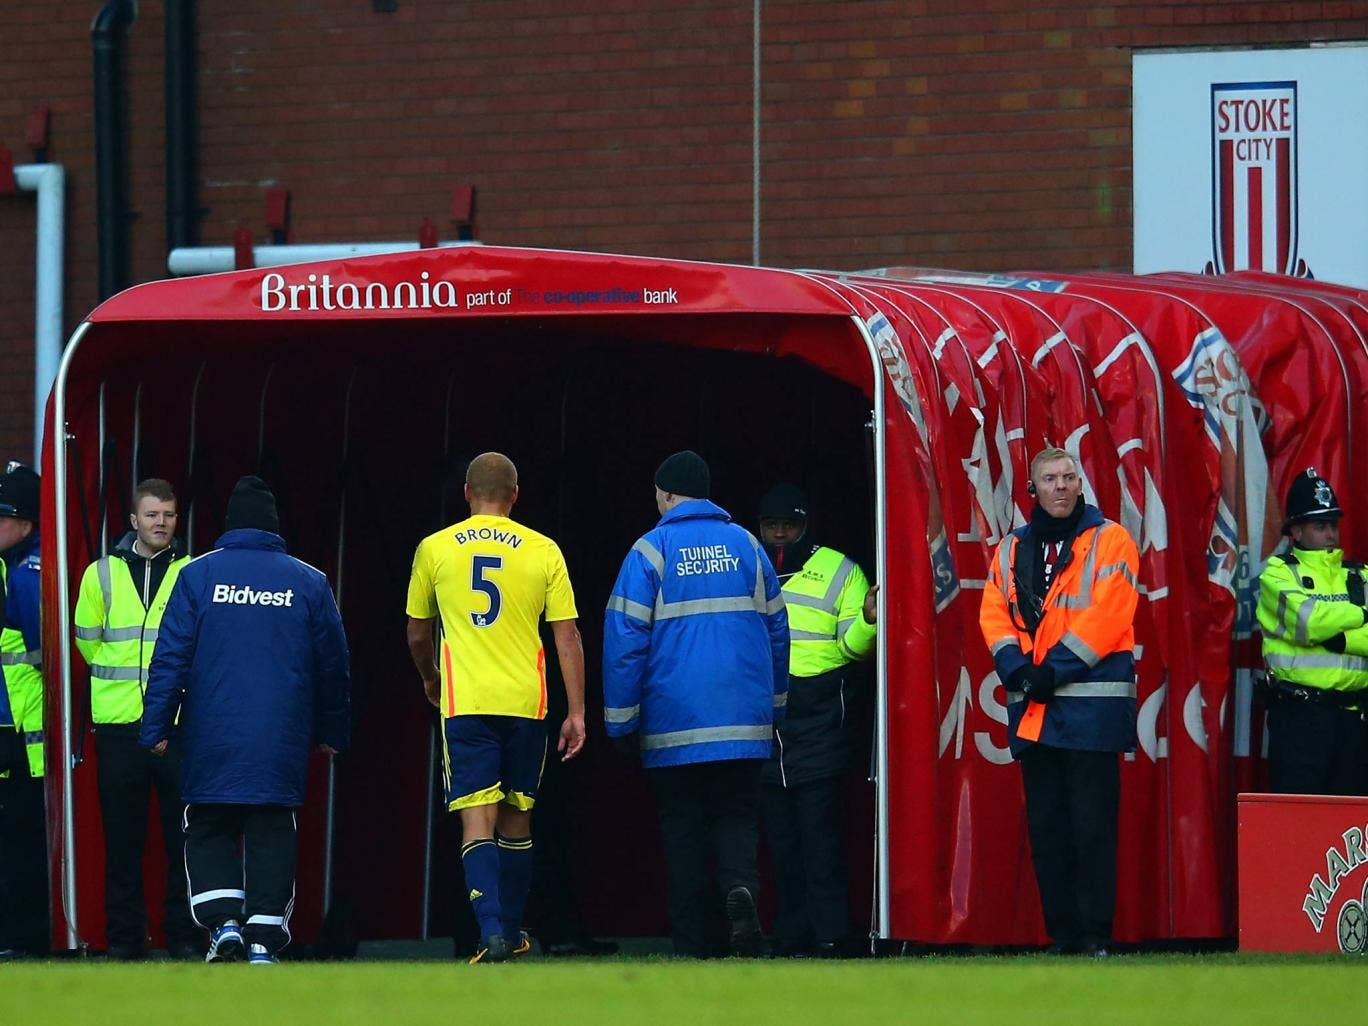 Sunderland defender Wes Brown leaves the field after being shown a red card in the game against Stoke City